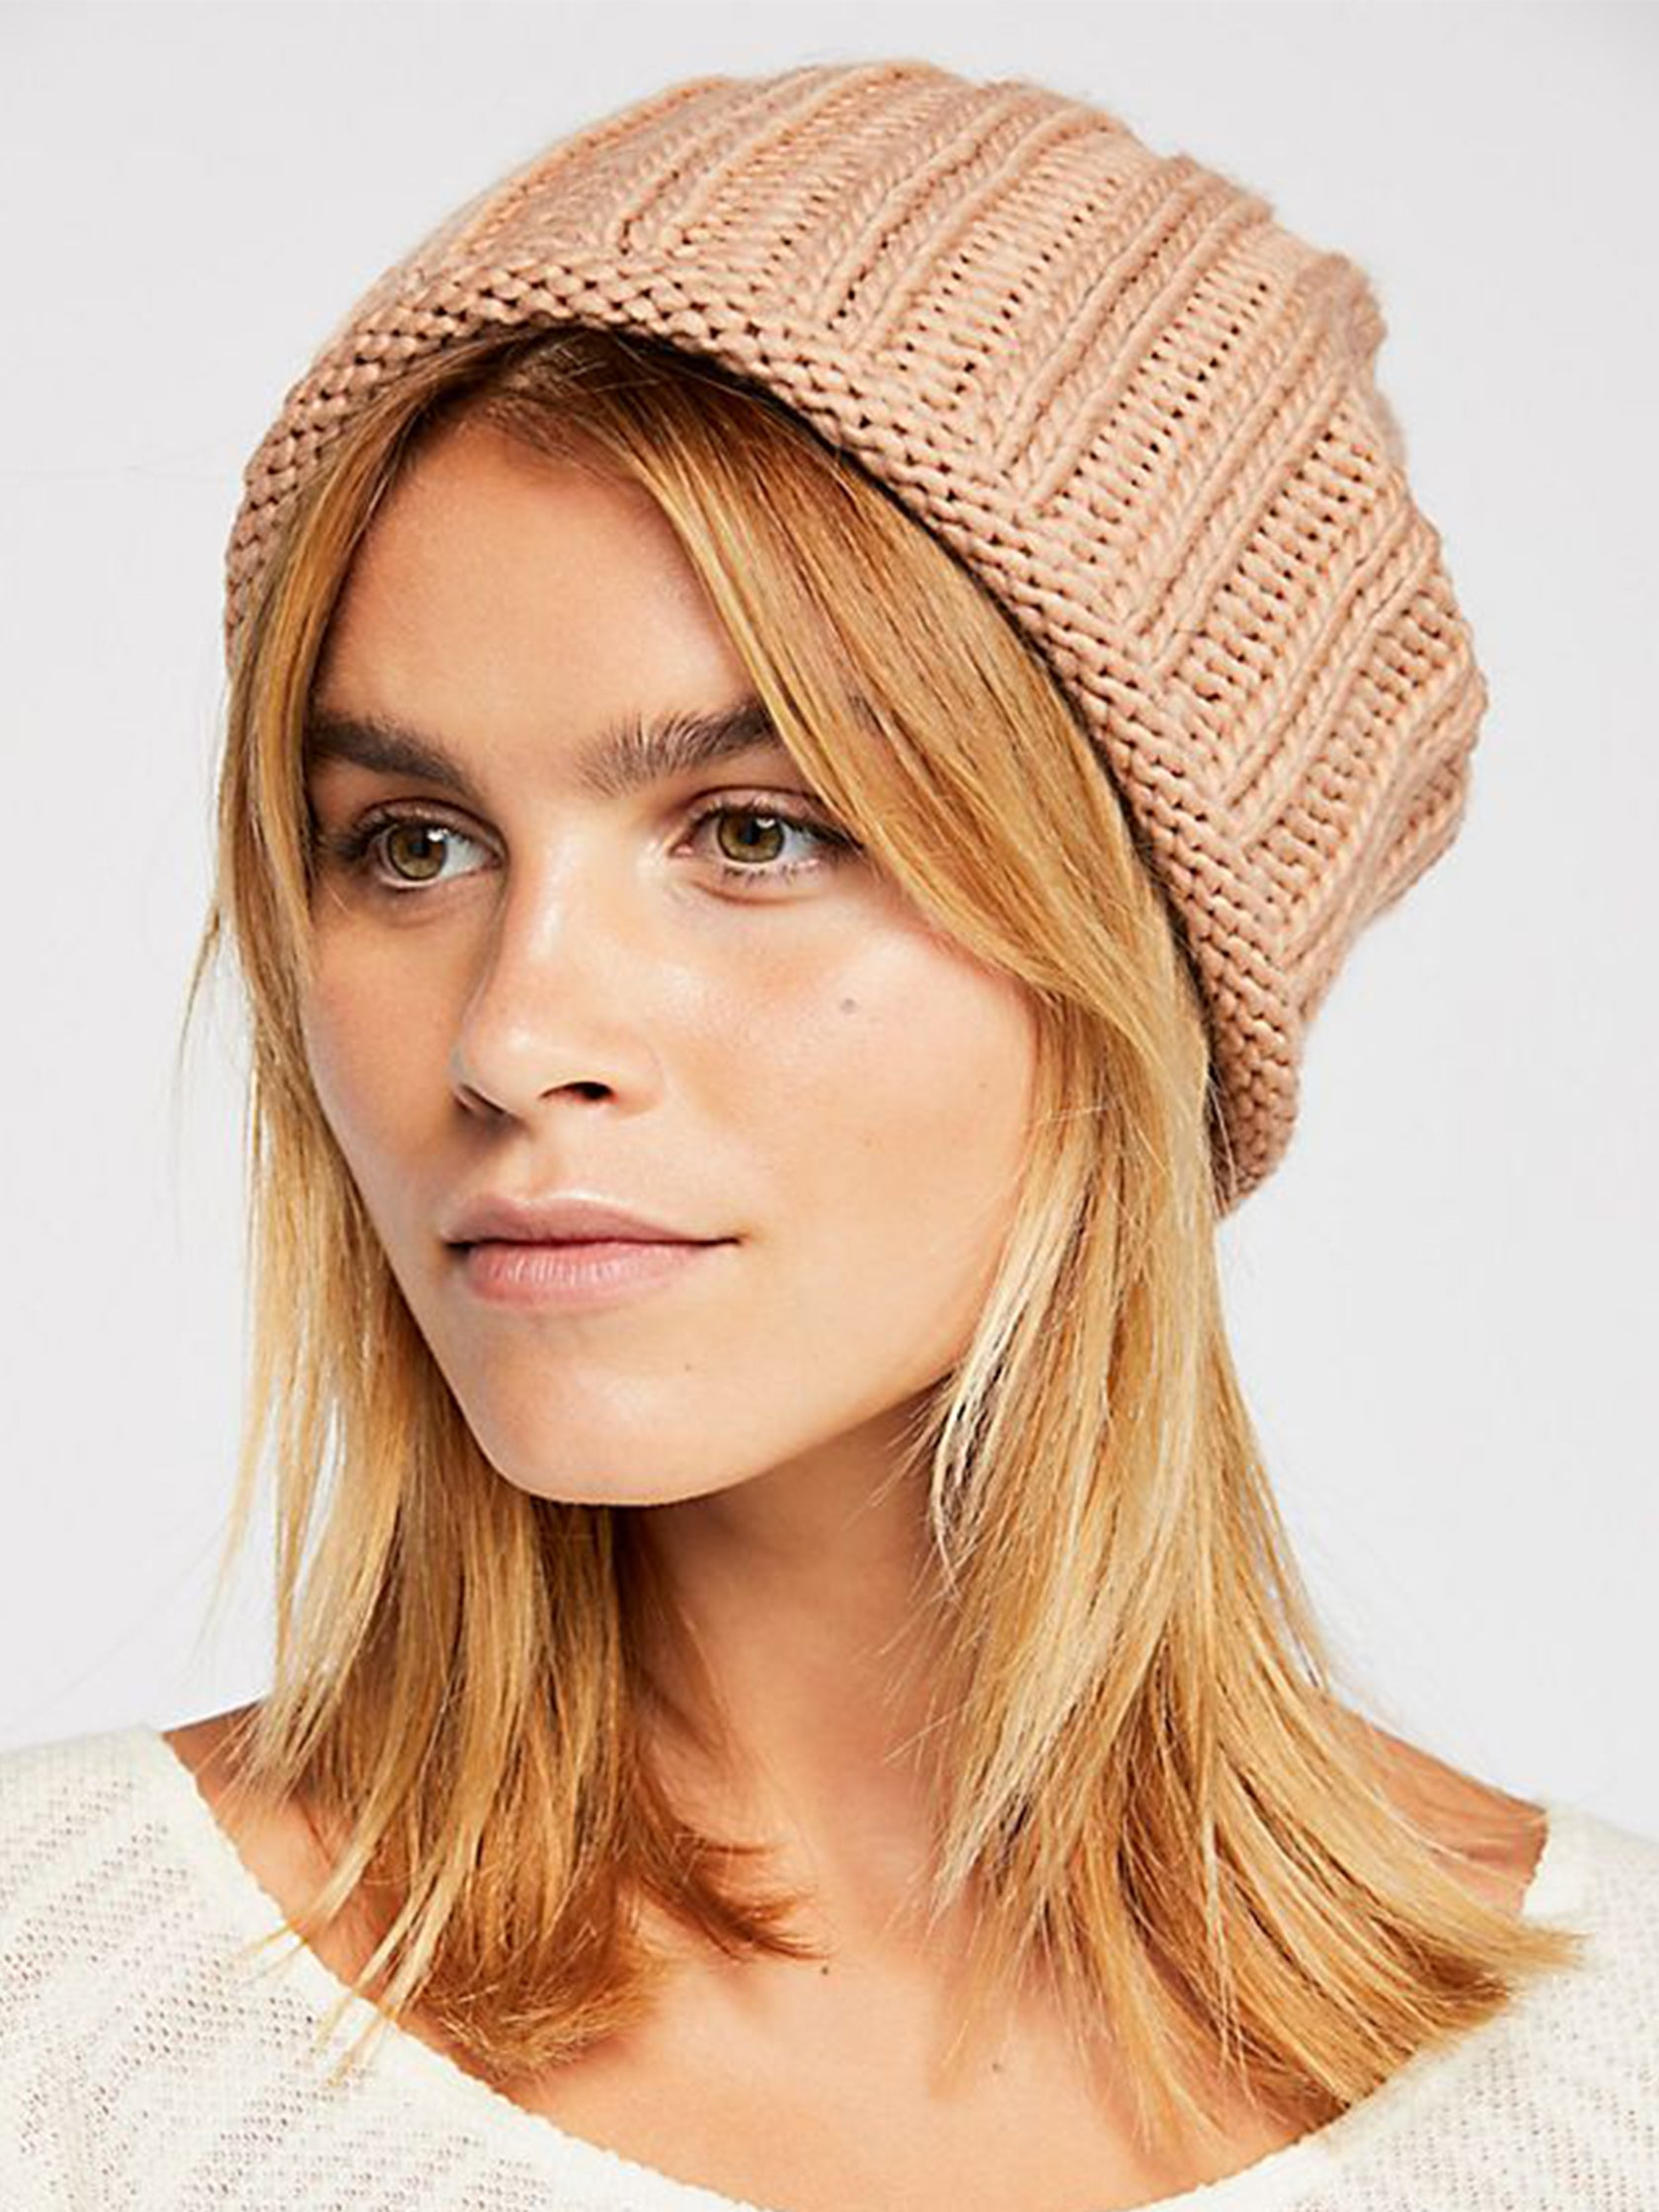 Girl outfit in a hat rental from Free People called Rory Rib Knit Beanie